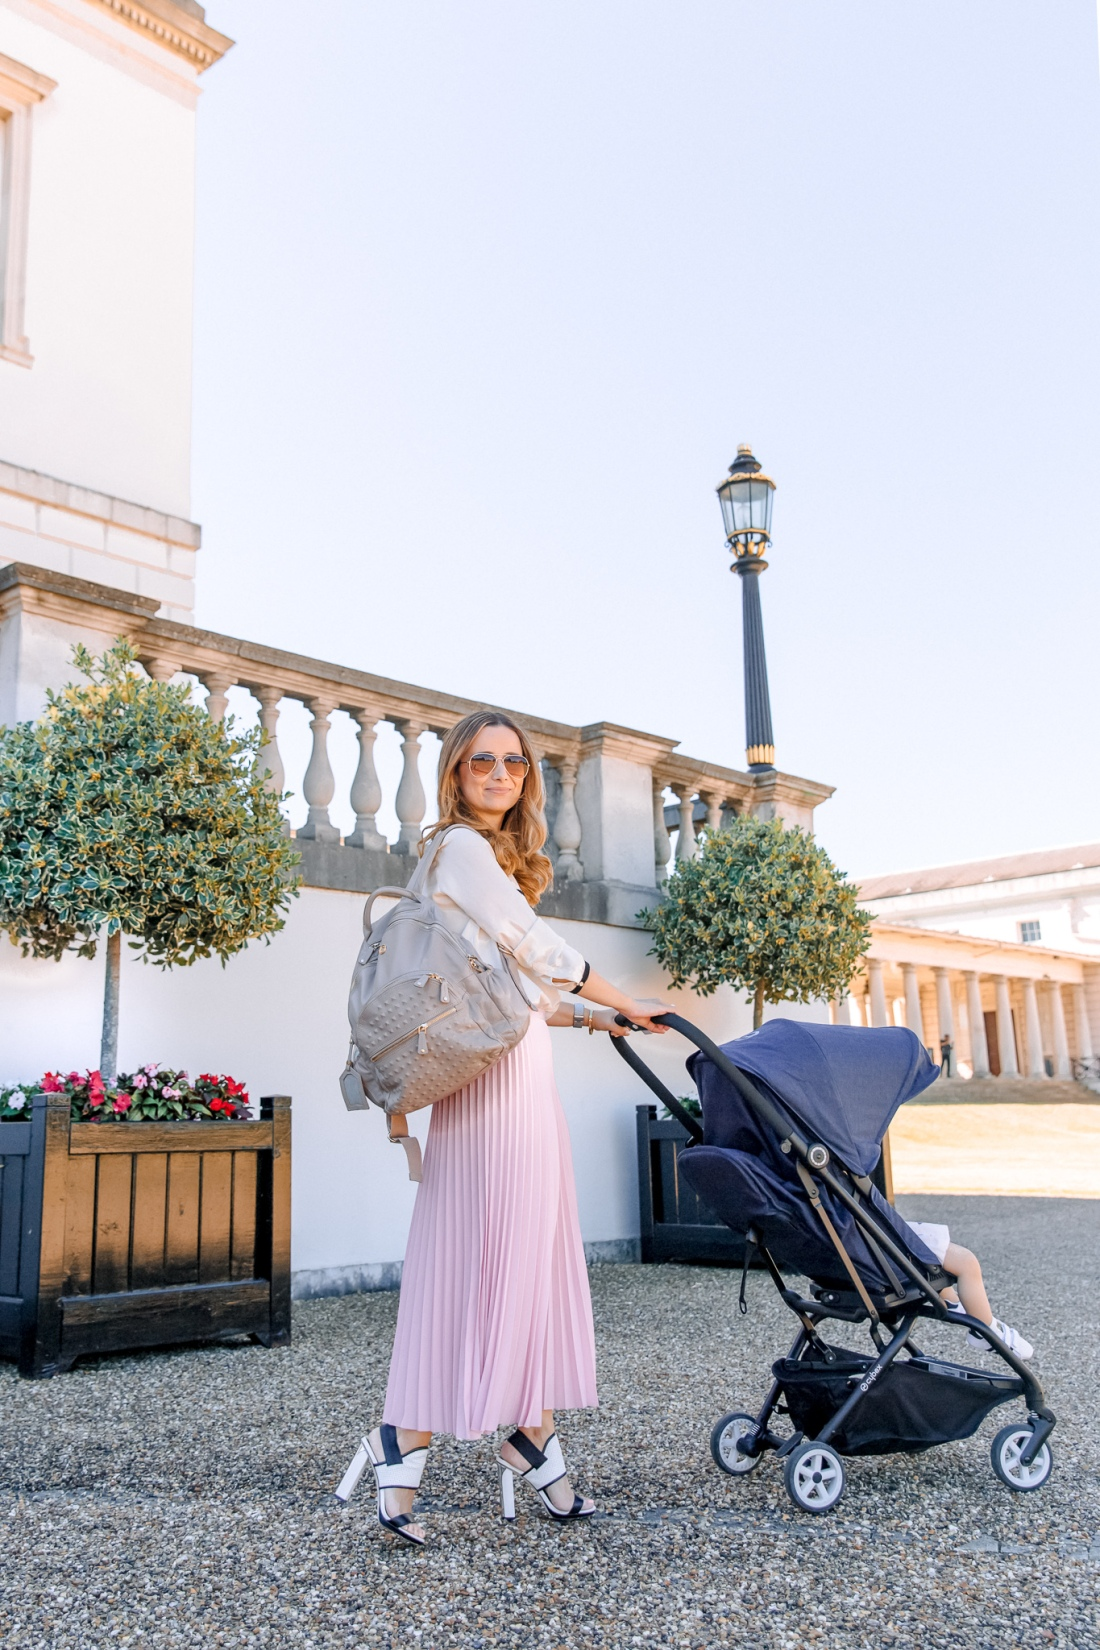 Cybex Eezy S Twist The New City Stroller With A Twist Lux Mumma